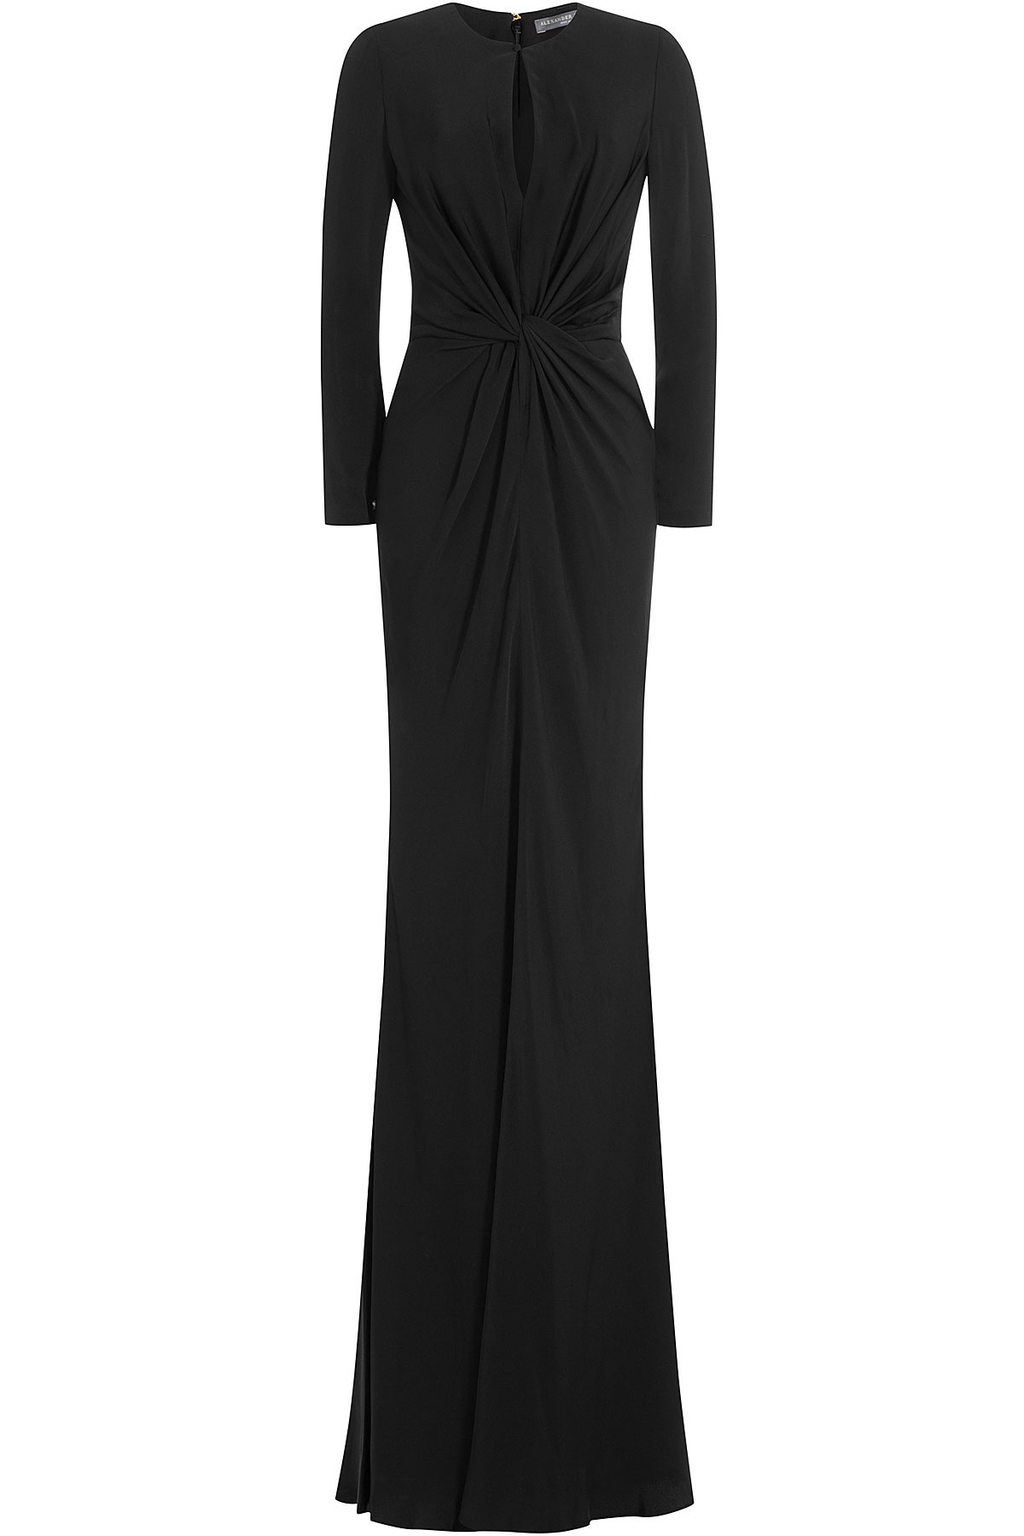 Draped Floor Length Gown - style: ballgown; pattern: plain; predominant colour: black; occasions: evening; length: floor length; fit: body skimming; neckline: peep hole neckline; fibres: viscose/rayon - 100%; sleeve length: long sleeve; sleeve style: standard; pattern type: fabric; texture group: jersey - stretchy/drapey; season: s/s 2016; wardrobe: event